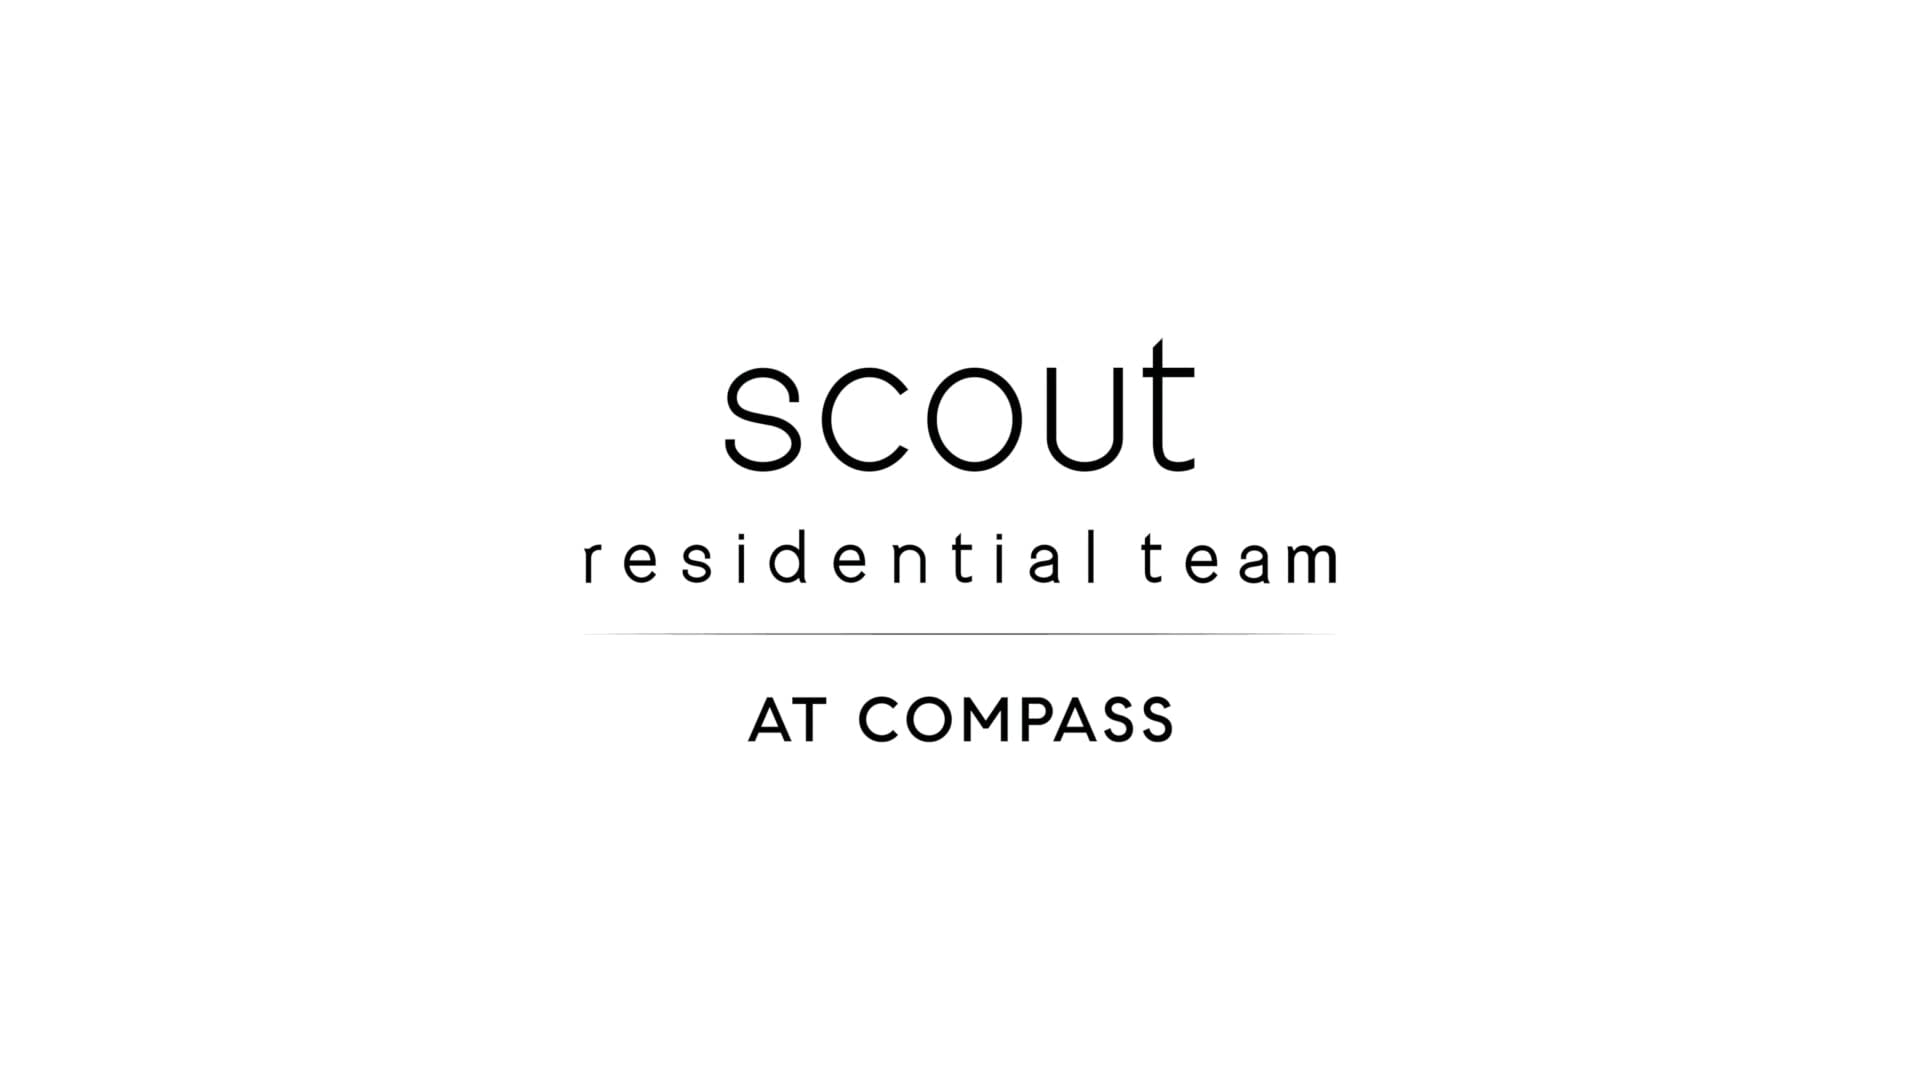 The Scout Residential Team Mission